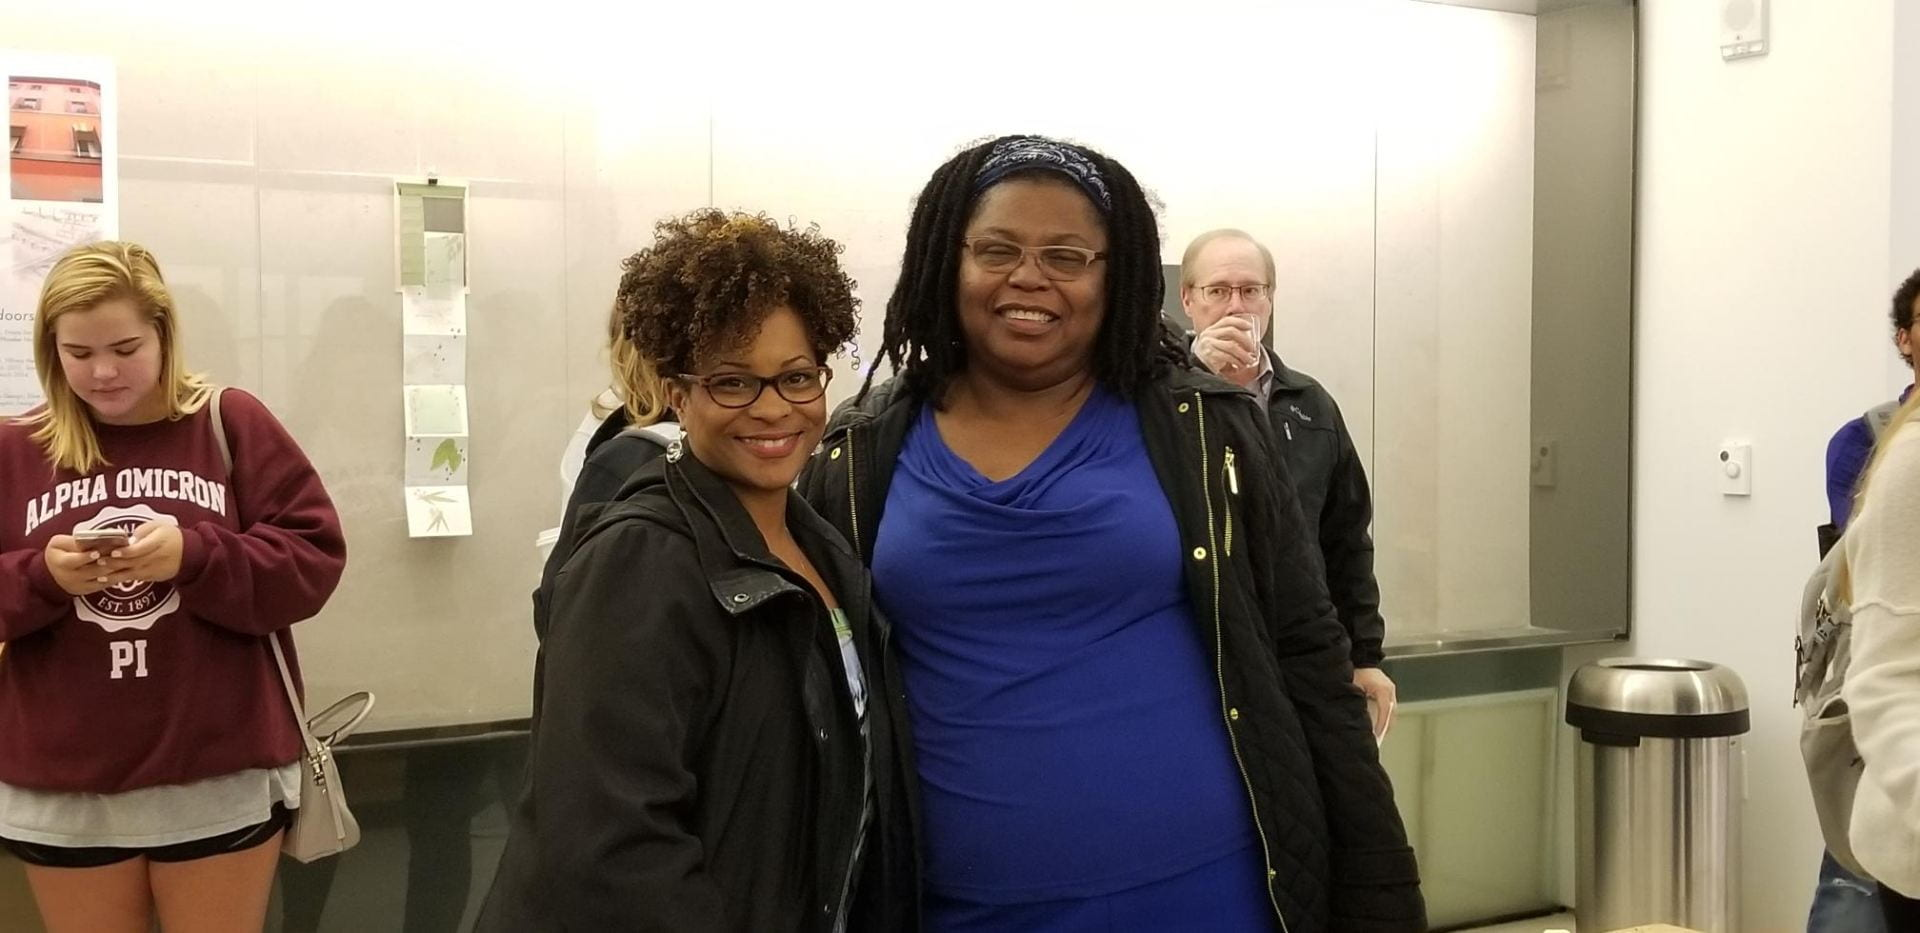 Executive Director for the IDEALS Institute, Elecia C. Smith and journalism Prof. Lucy Brown invited their classes to the Global Ethics event.